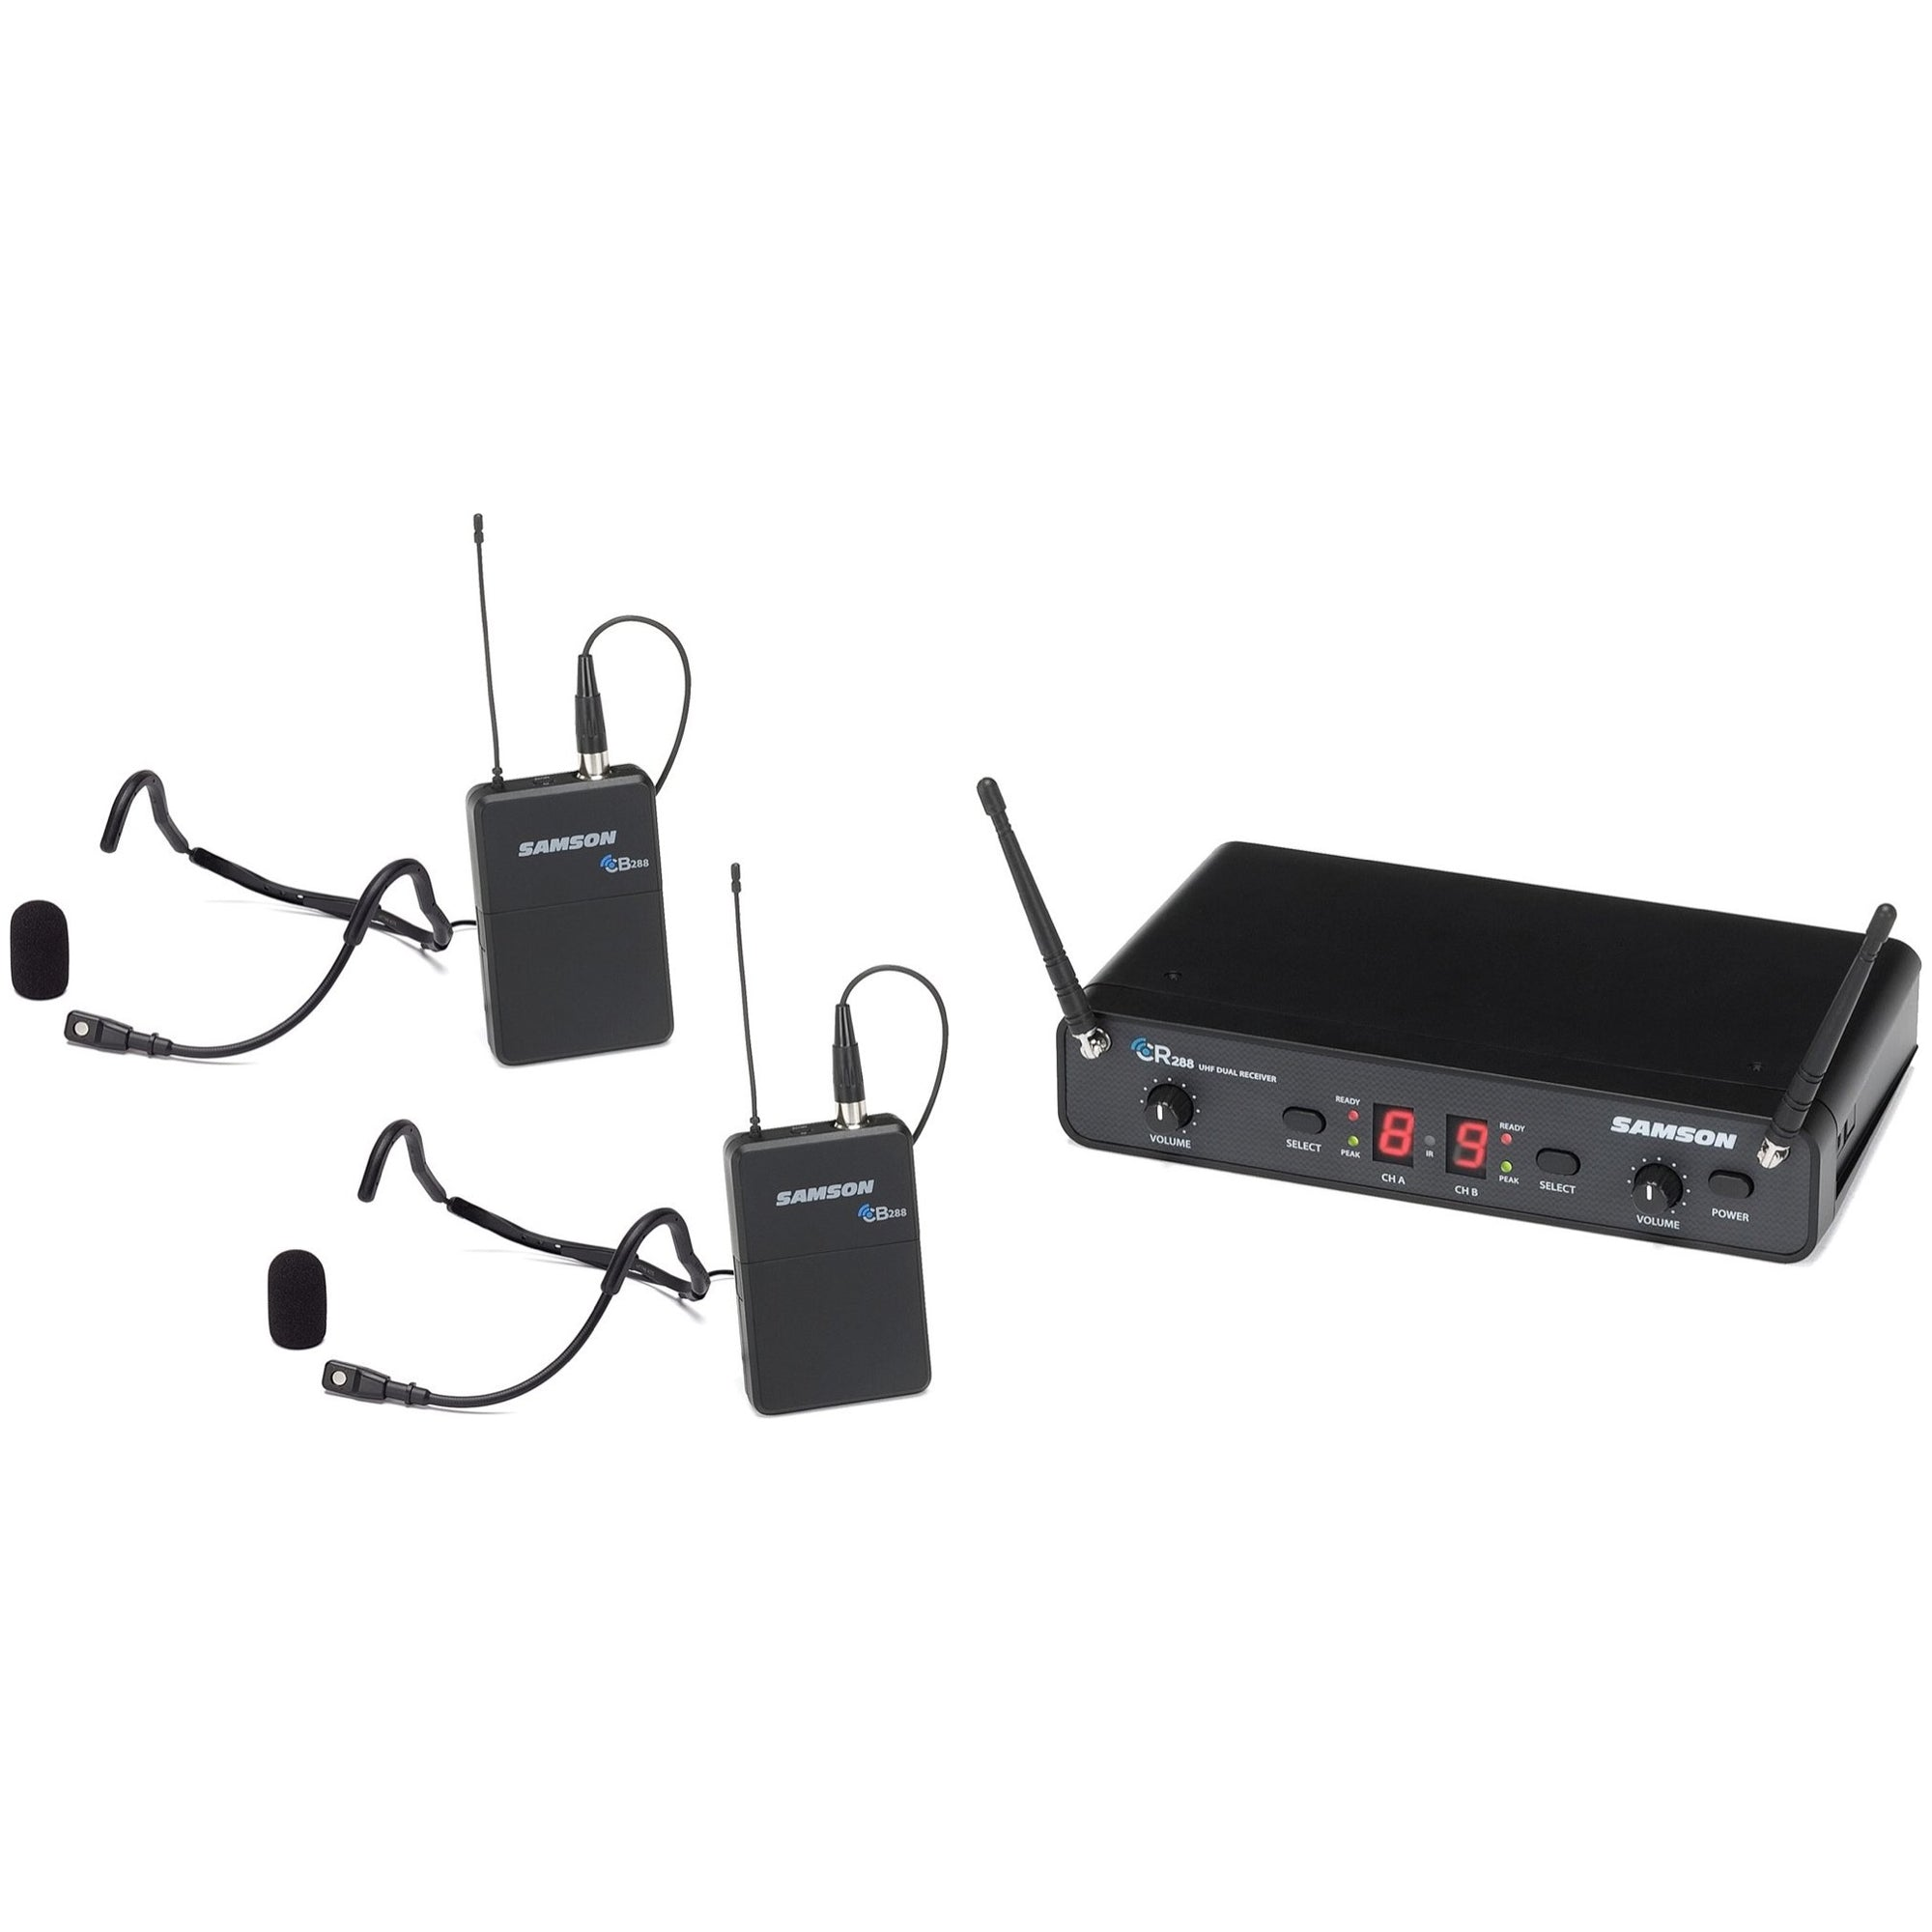 Samson Concert 288 Dual QE Fitness Wireless Headset Microphone System